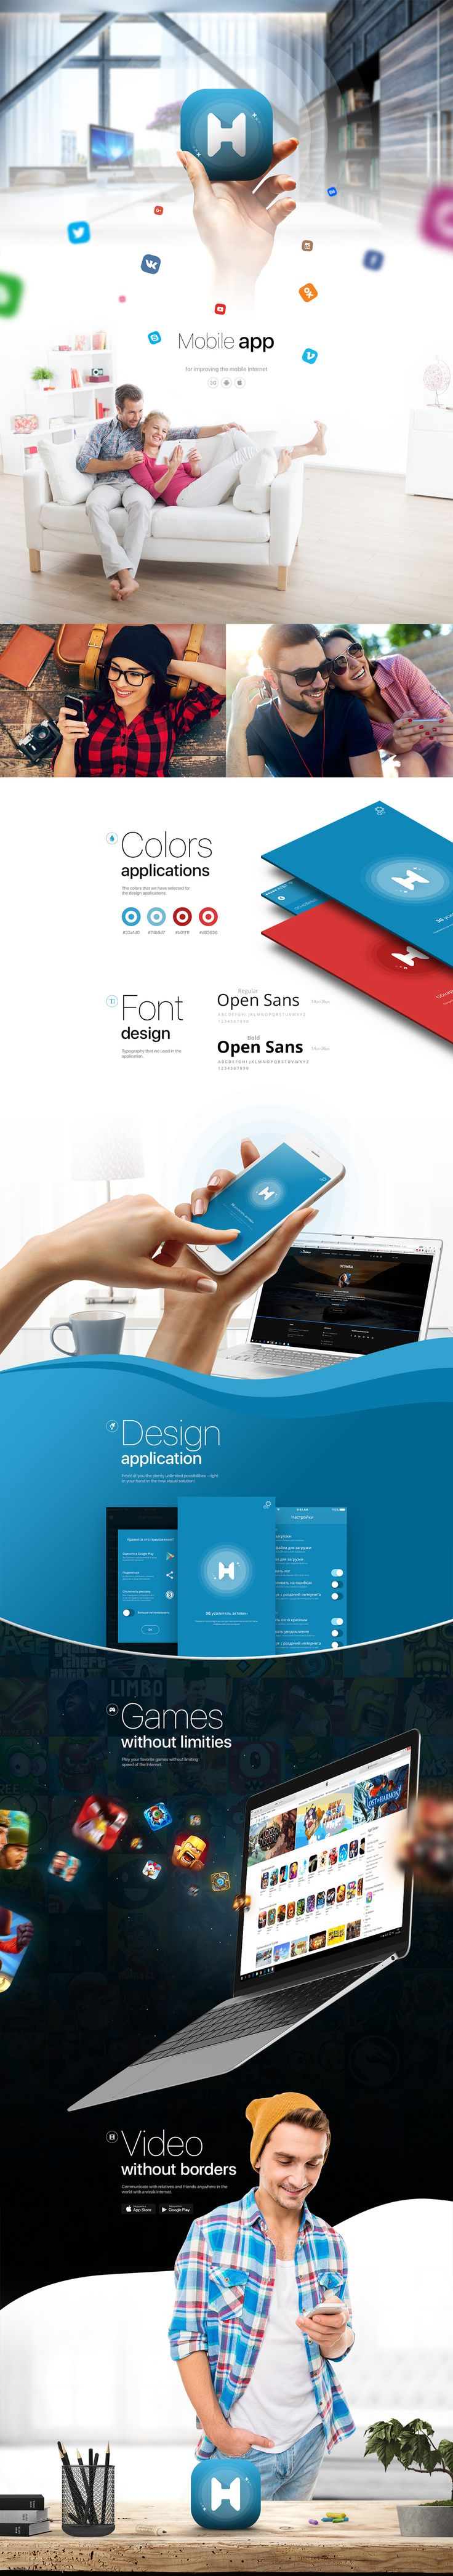 http://themeforest.net/item/appsworld-apps-landing-psd- on Behance